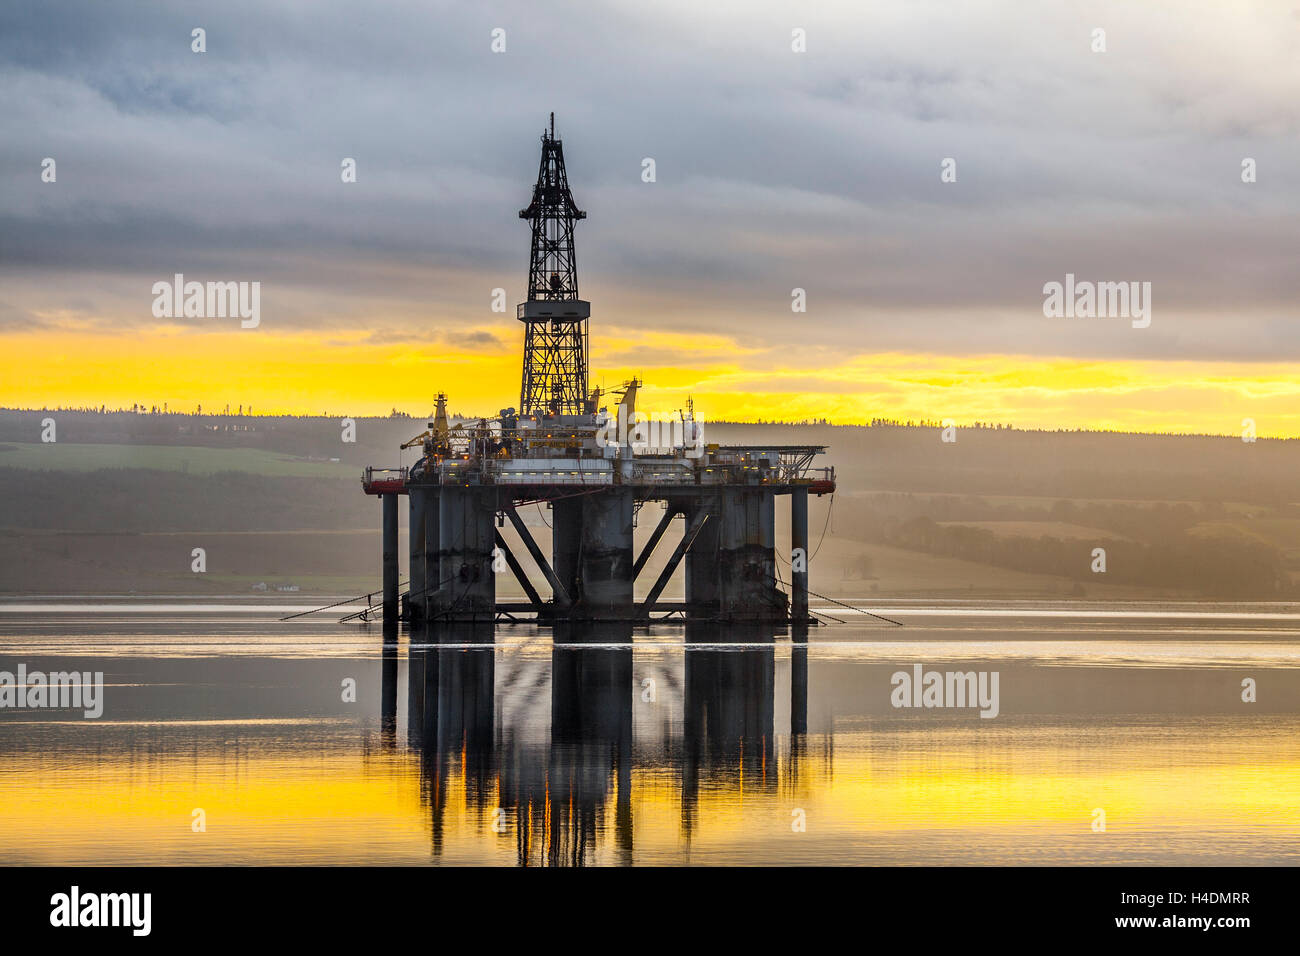 GSF ARCTIC II, Oil Rig in Cromarty Firth, in the port of Invergordon, Scotland - Stock Image